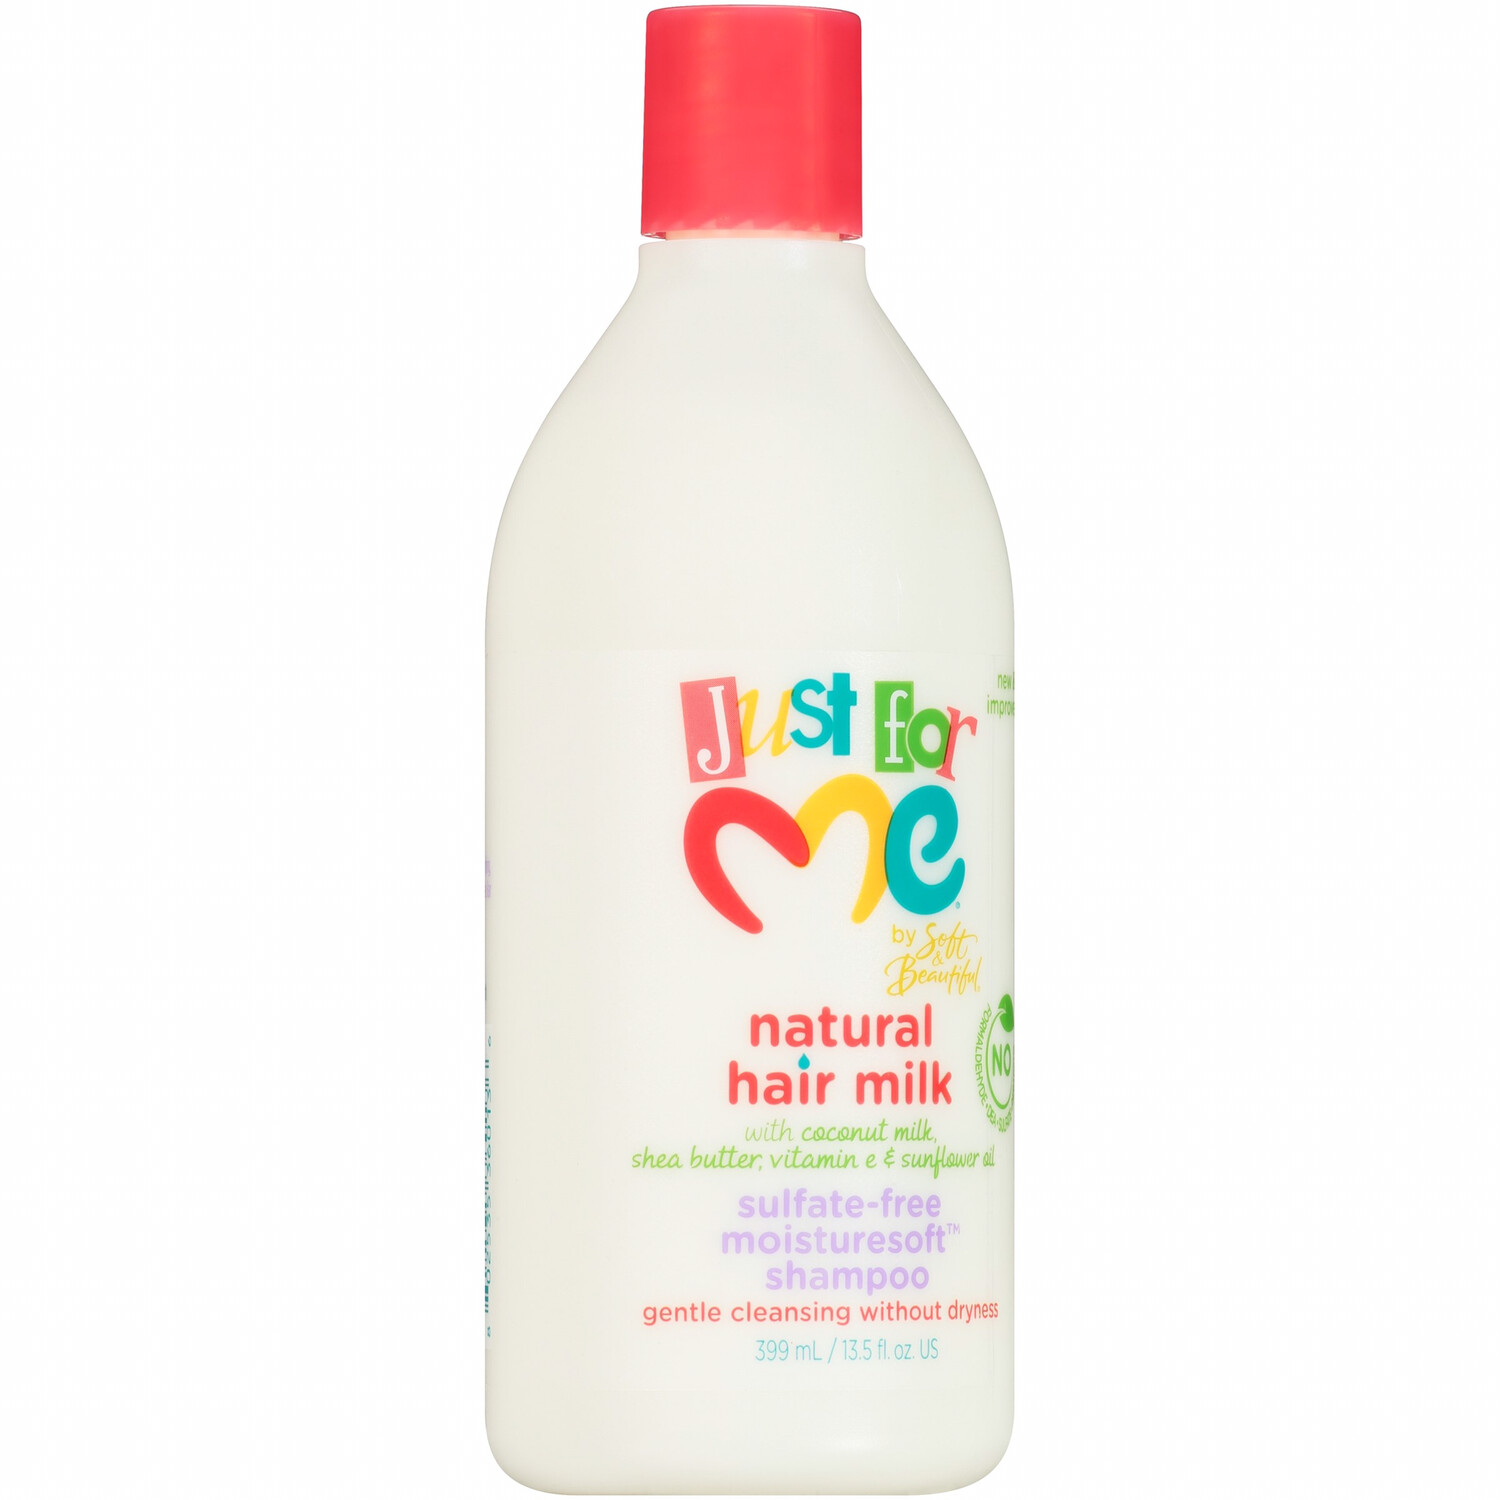 Just For Me Natural Hair Milk Sulfate-free Moisturesoft Shampoo